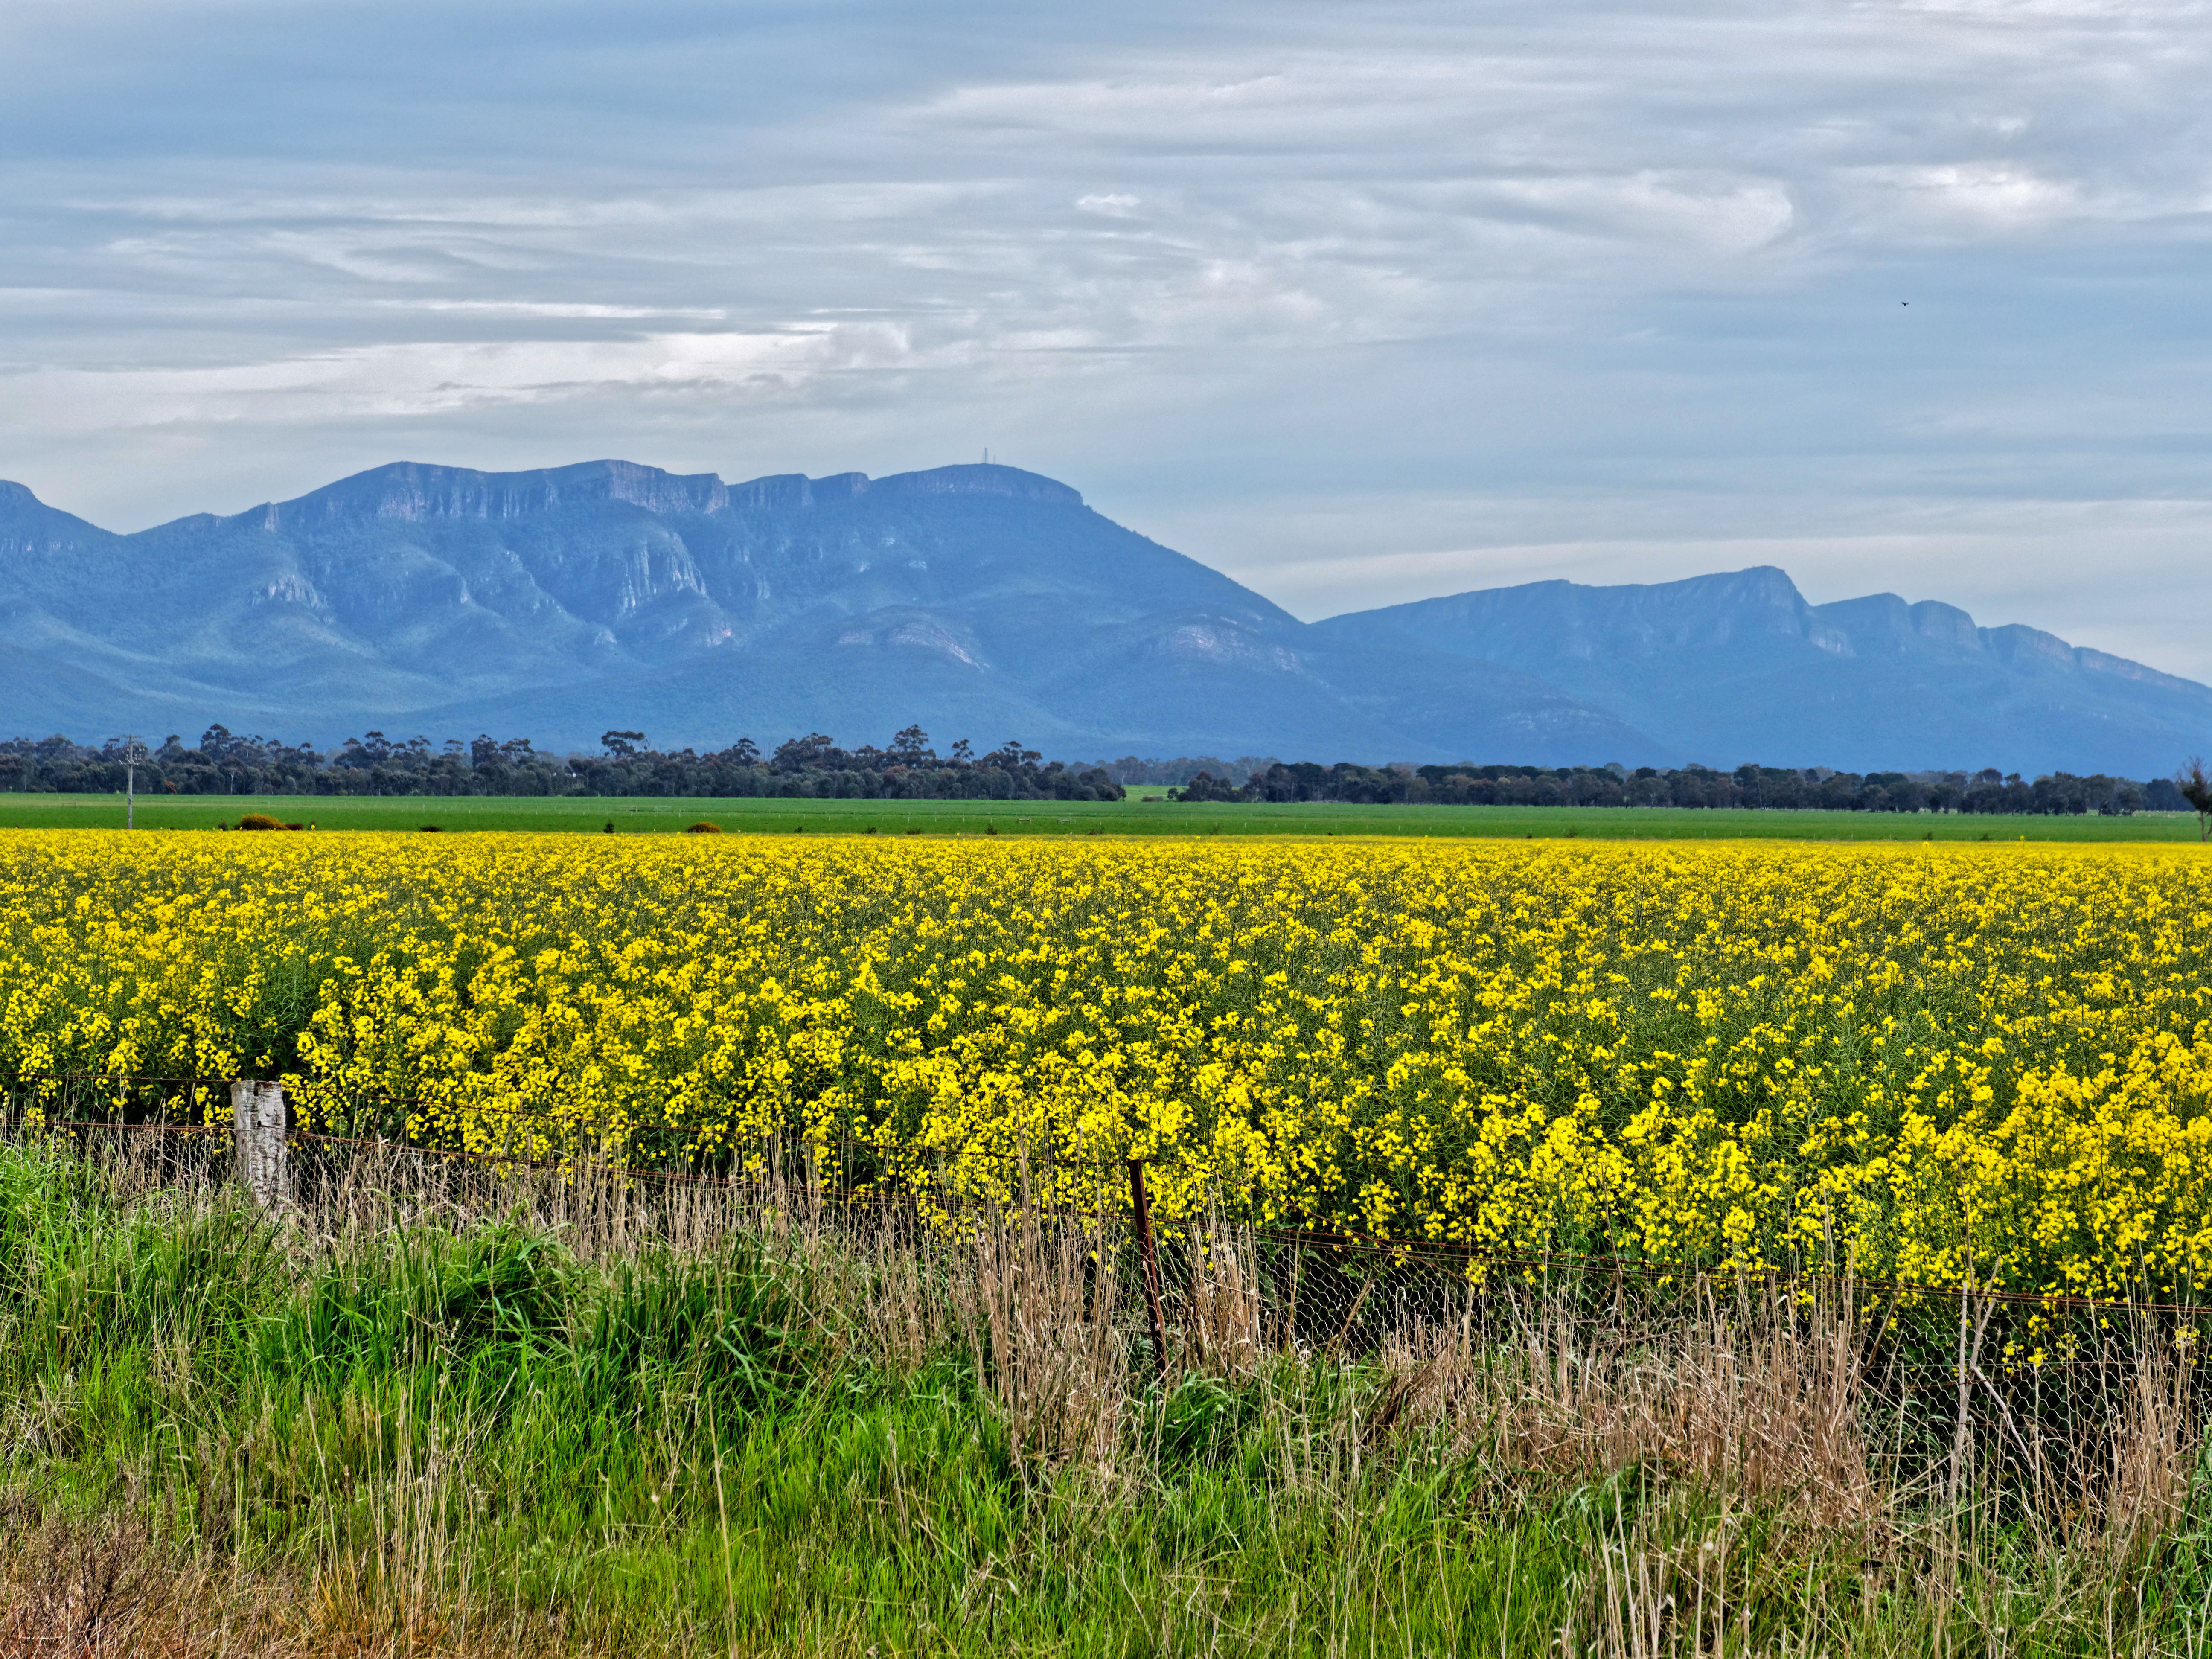 This should be Grampians-2-8.jpeg.  Is it missing?